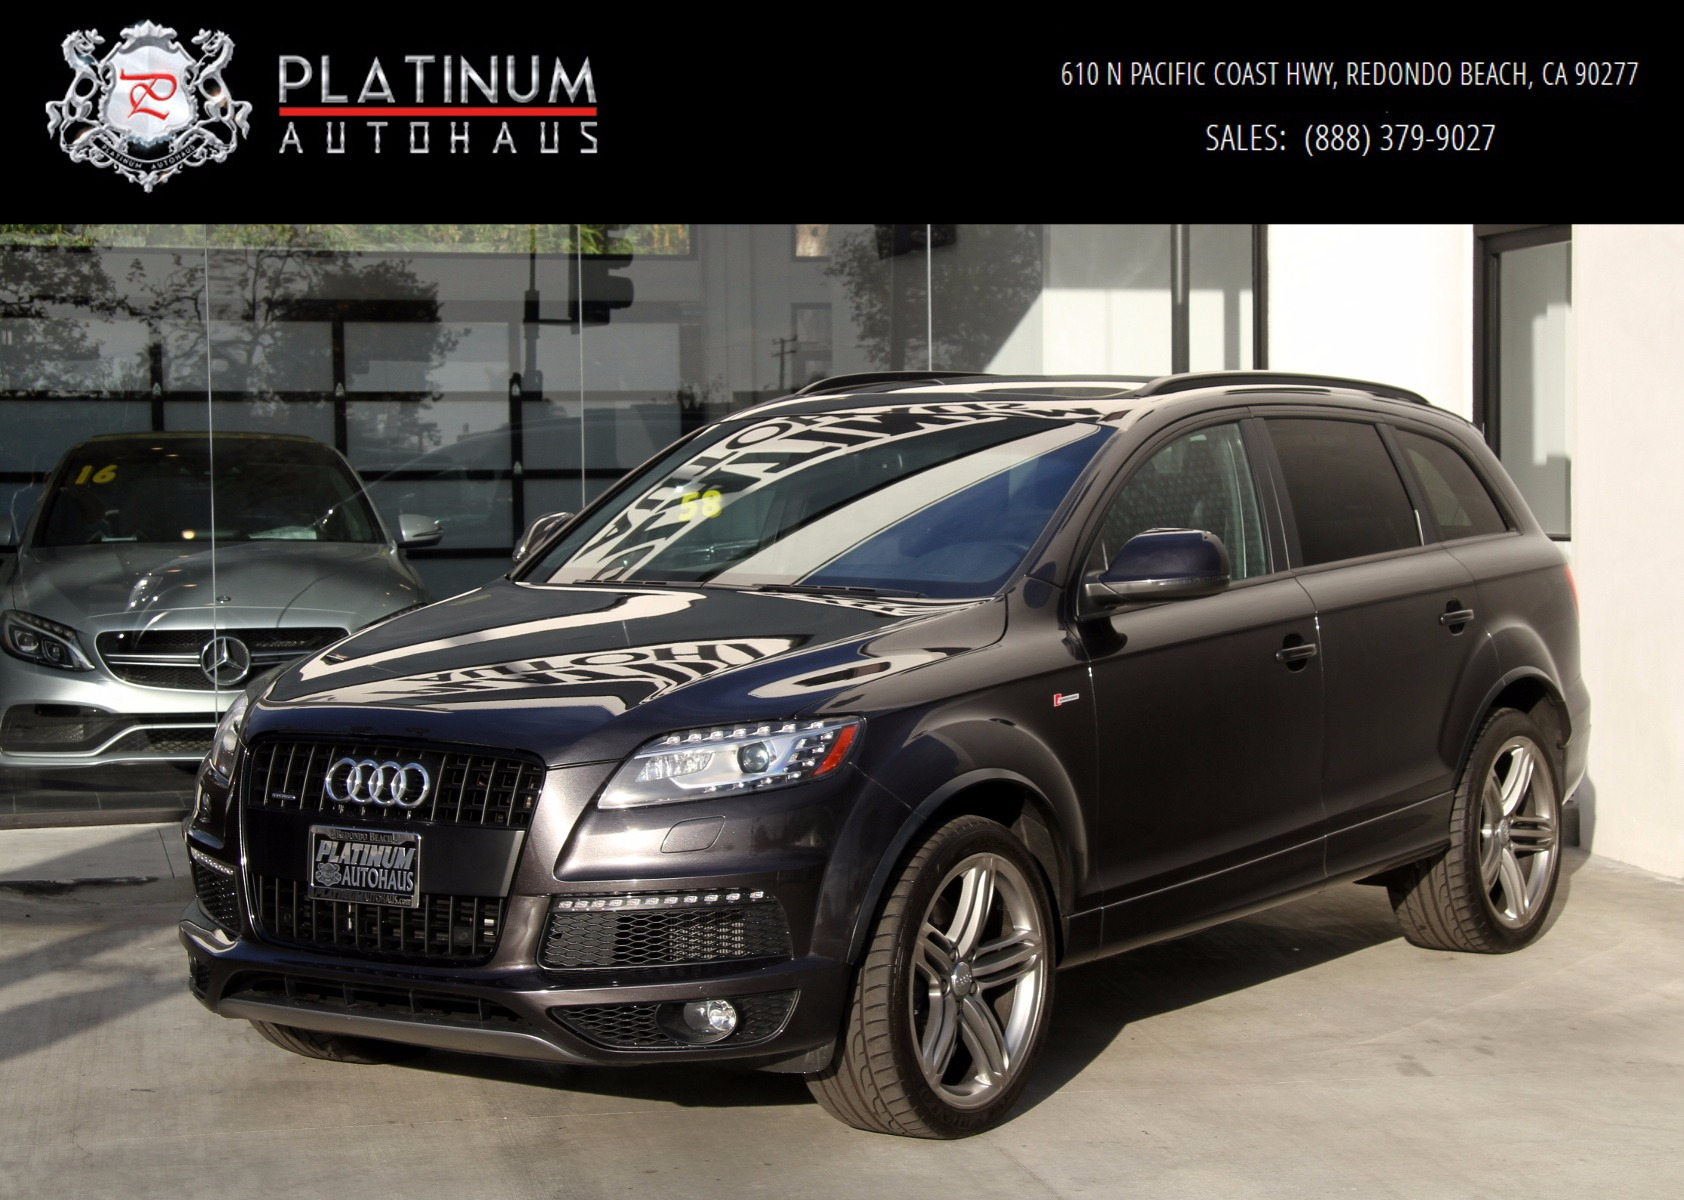 2014 Audi Q7 3 0t S Line Prestige Stock 6010 For Sale